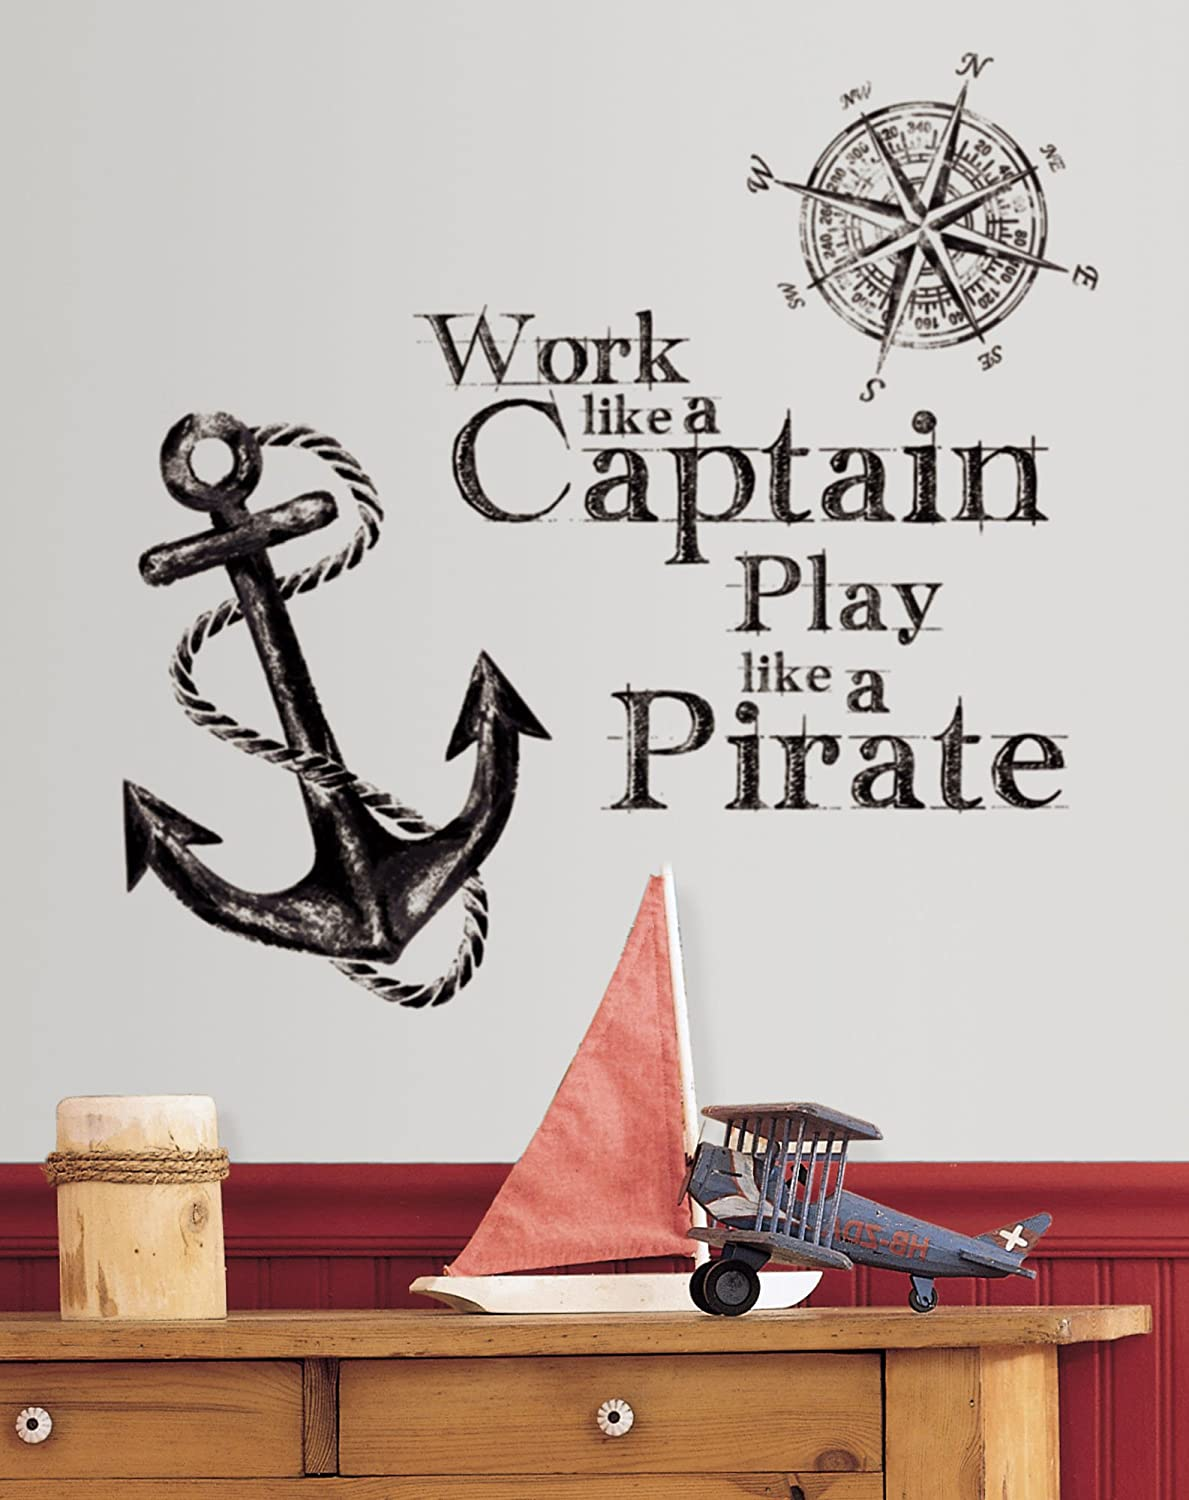 Roommates rmk2320gm work like a captain quote peel and stick wall roommates rmk2320gm work like a captain quote peel and stick wall decals decorative wall appliques amazon amipublicfo Image collections